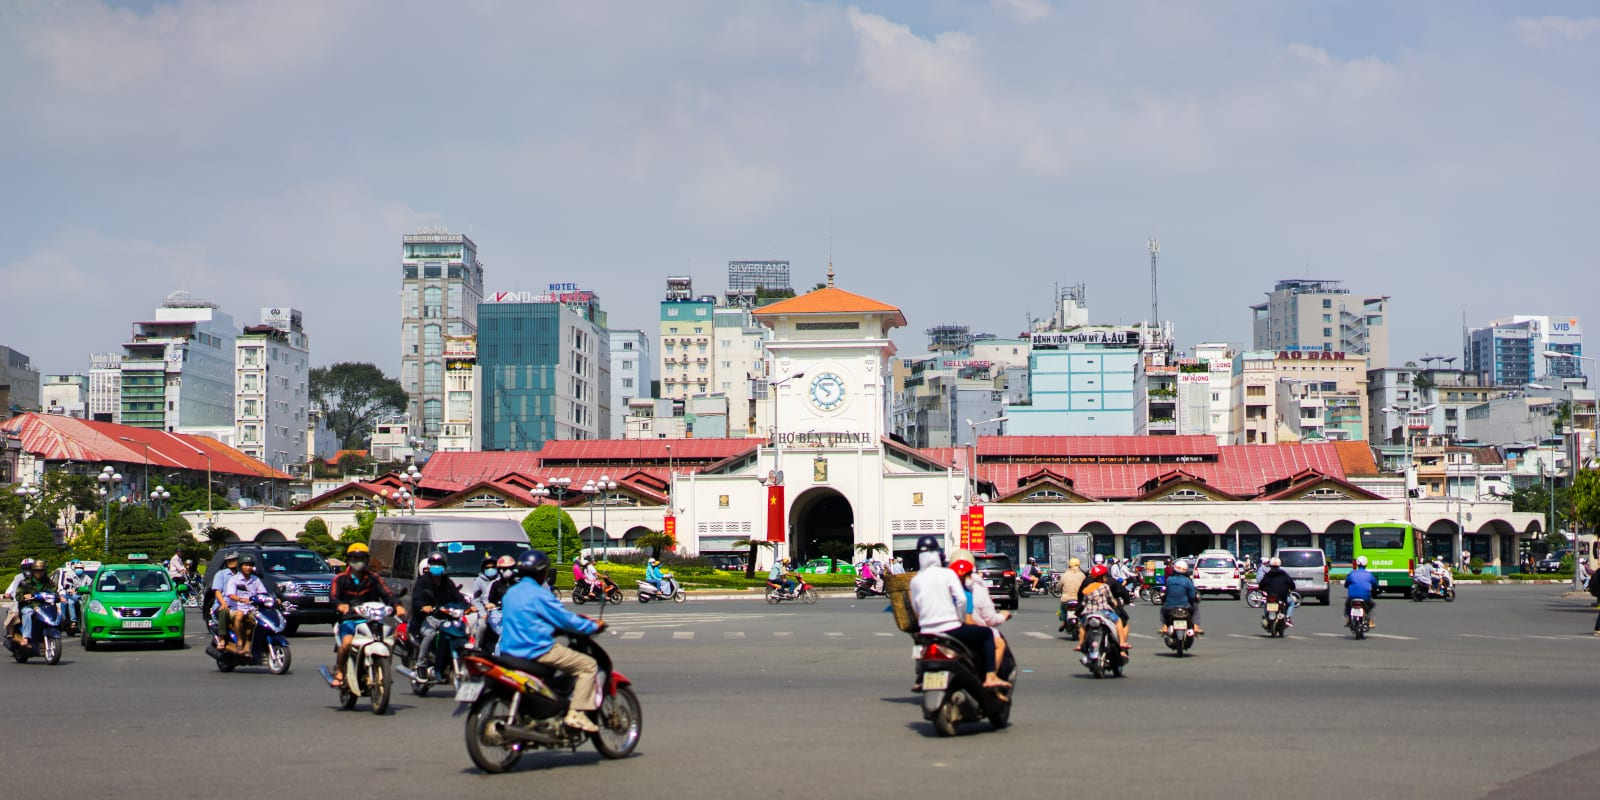 Image of the Ben Thanh Market in Ho Chi Minh City, Vietnam